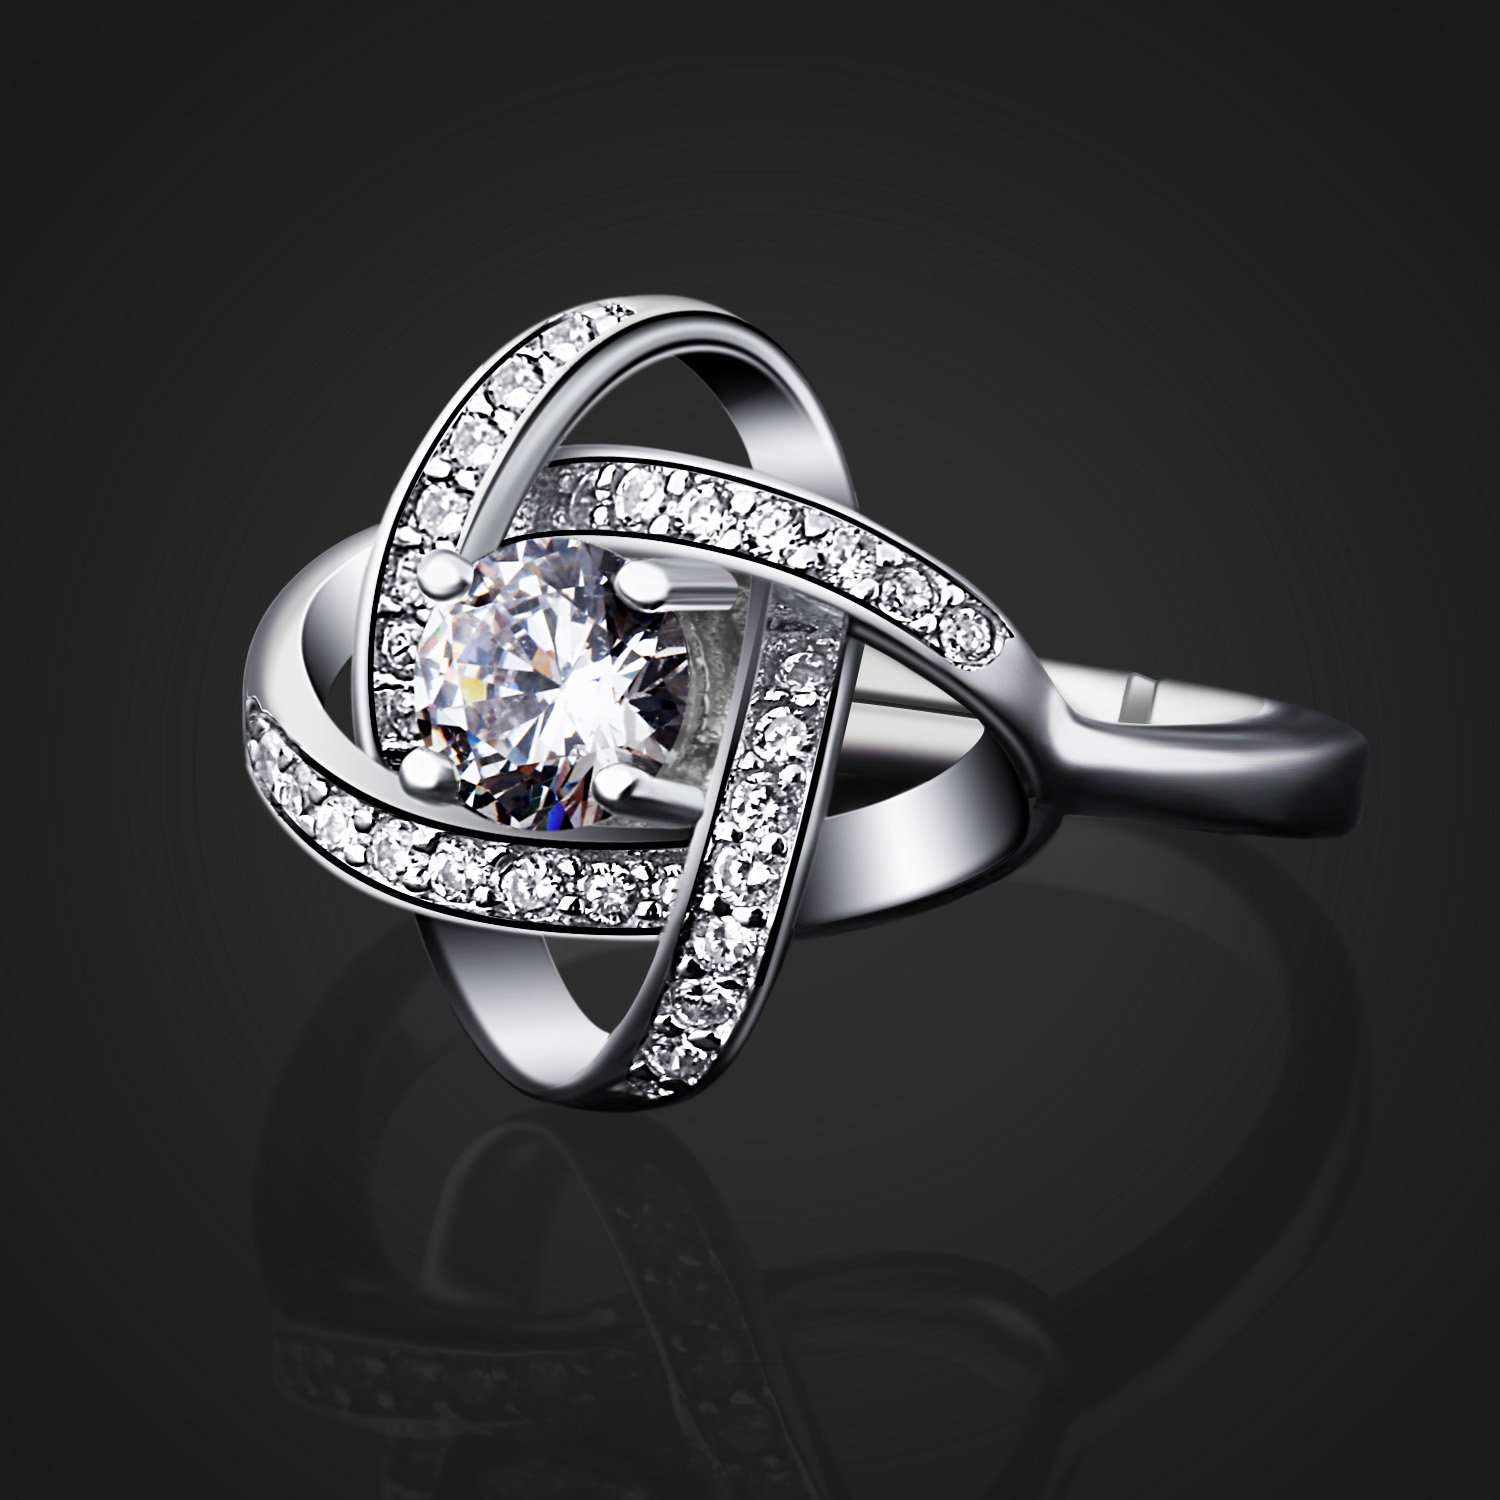 B.Catcher Women's Ring Adjustable 925 Sterling Silver Cubic Zirconia Valentine's Gift for Her by B.Catcher (Image #2)